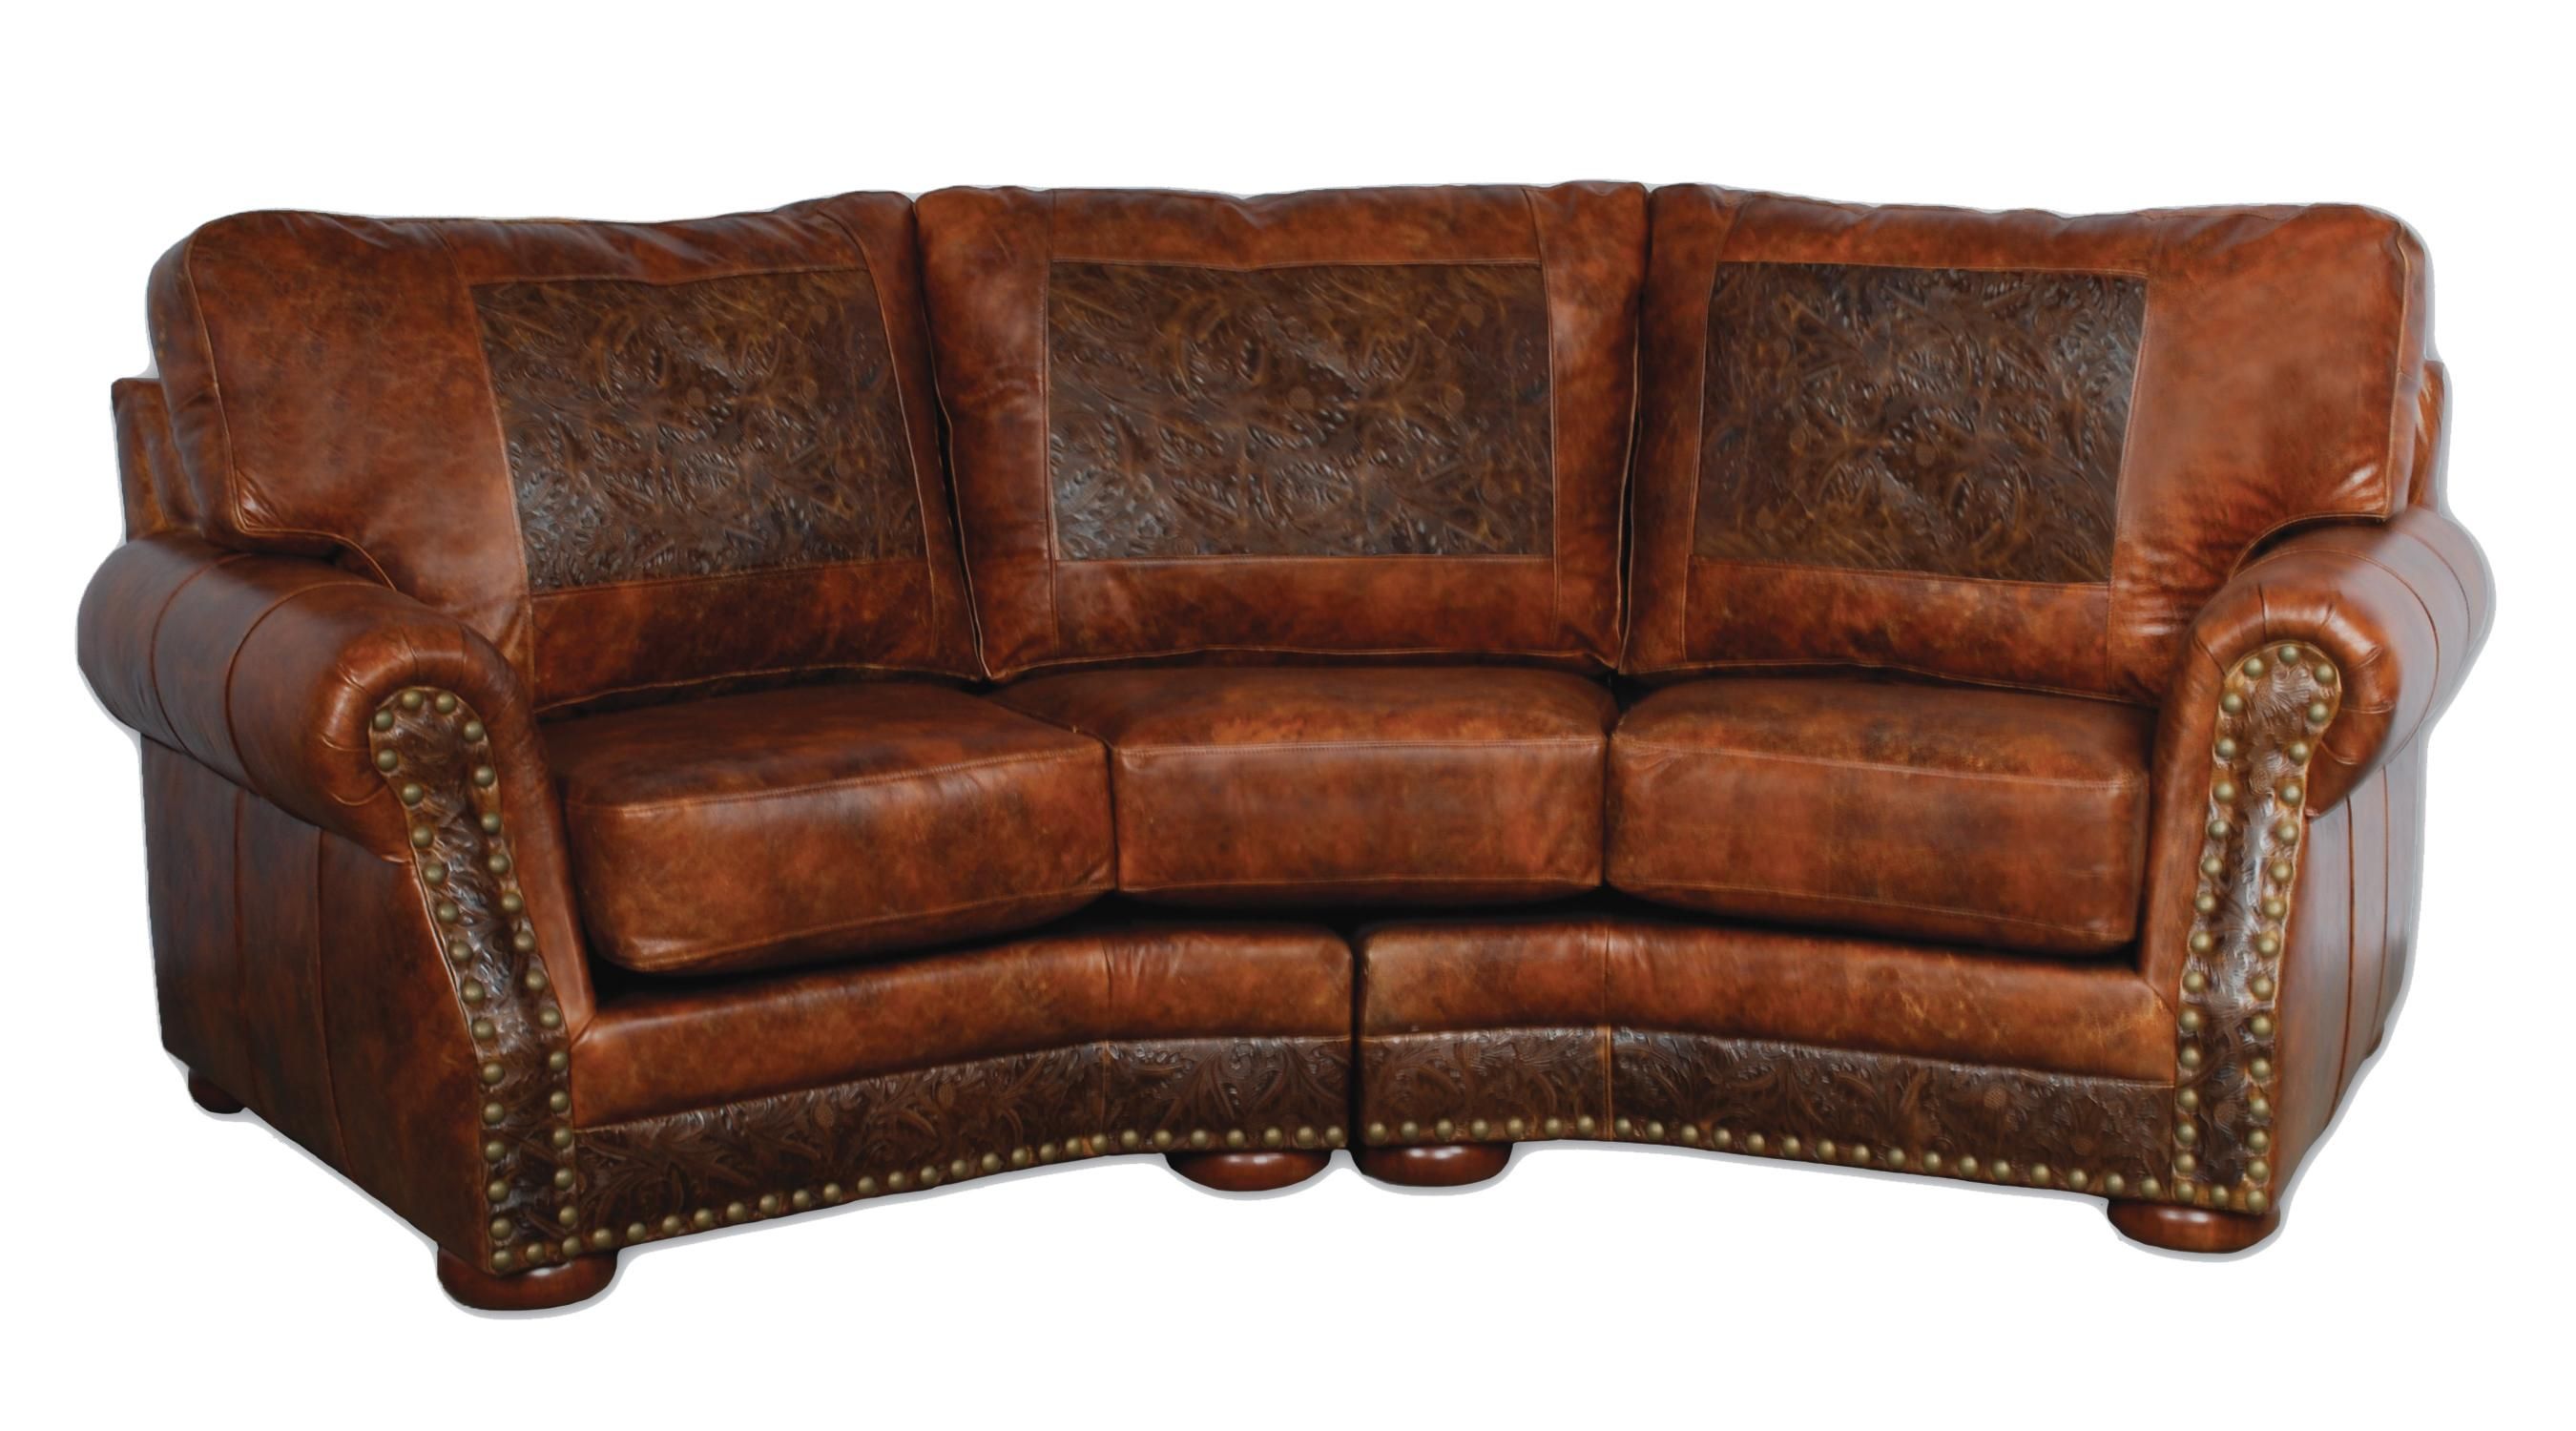 leather furniture cameron ranch conversaton sofa antiquity ember u0026 cosmopolitian tooled  leather LFJAVPN